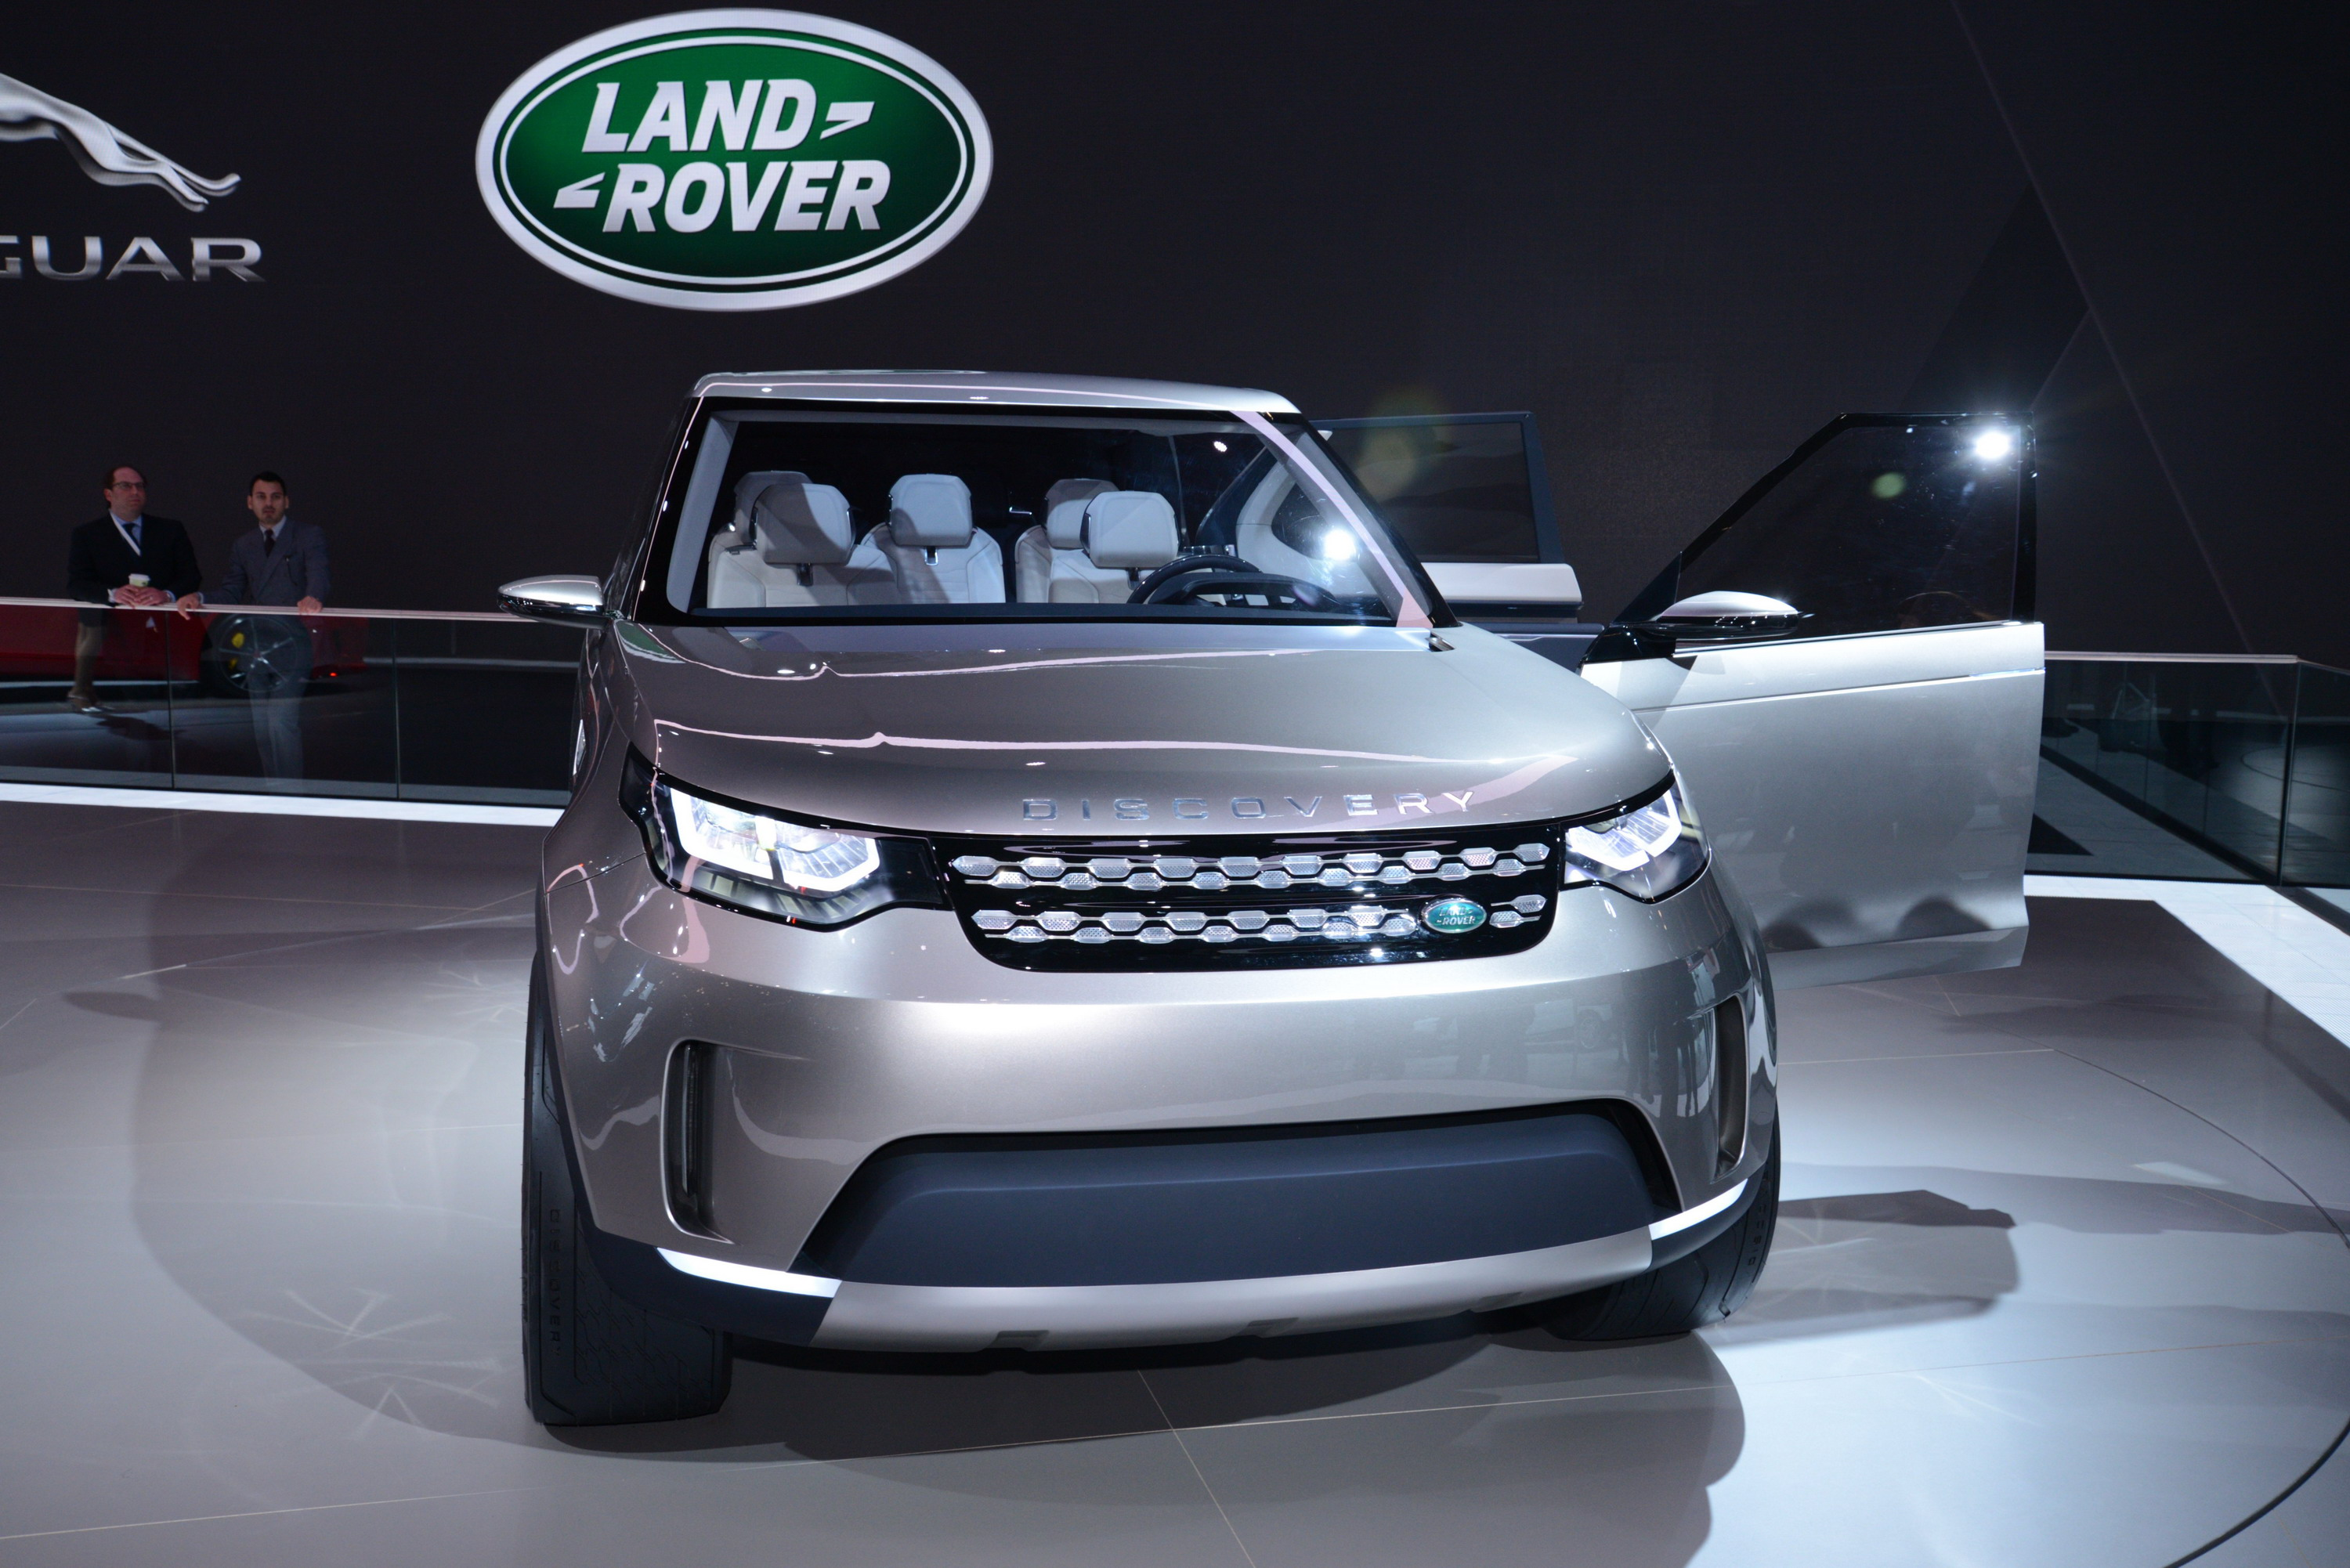 2014 Land Rover Discovery Vision Concept Review - Top Speed